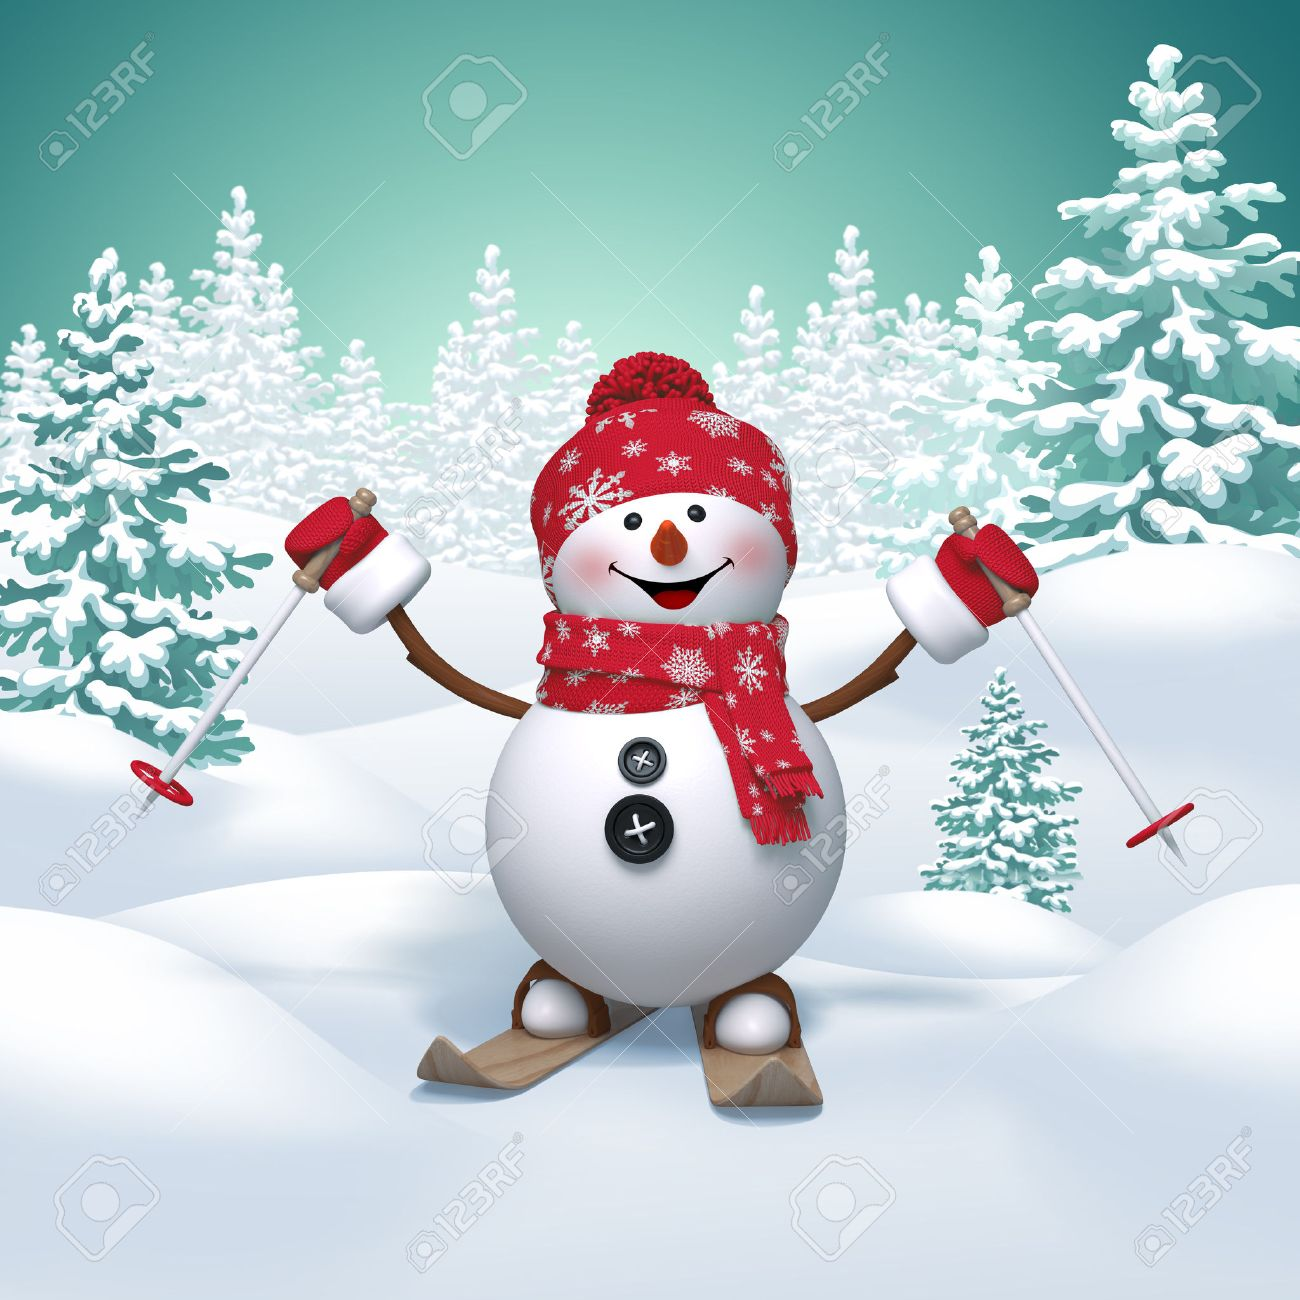 Skiing Snowman 3d Christmas Cartoon Character Winter Landscape Stock Photo Picture And Royalty Free Image Image 32940276